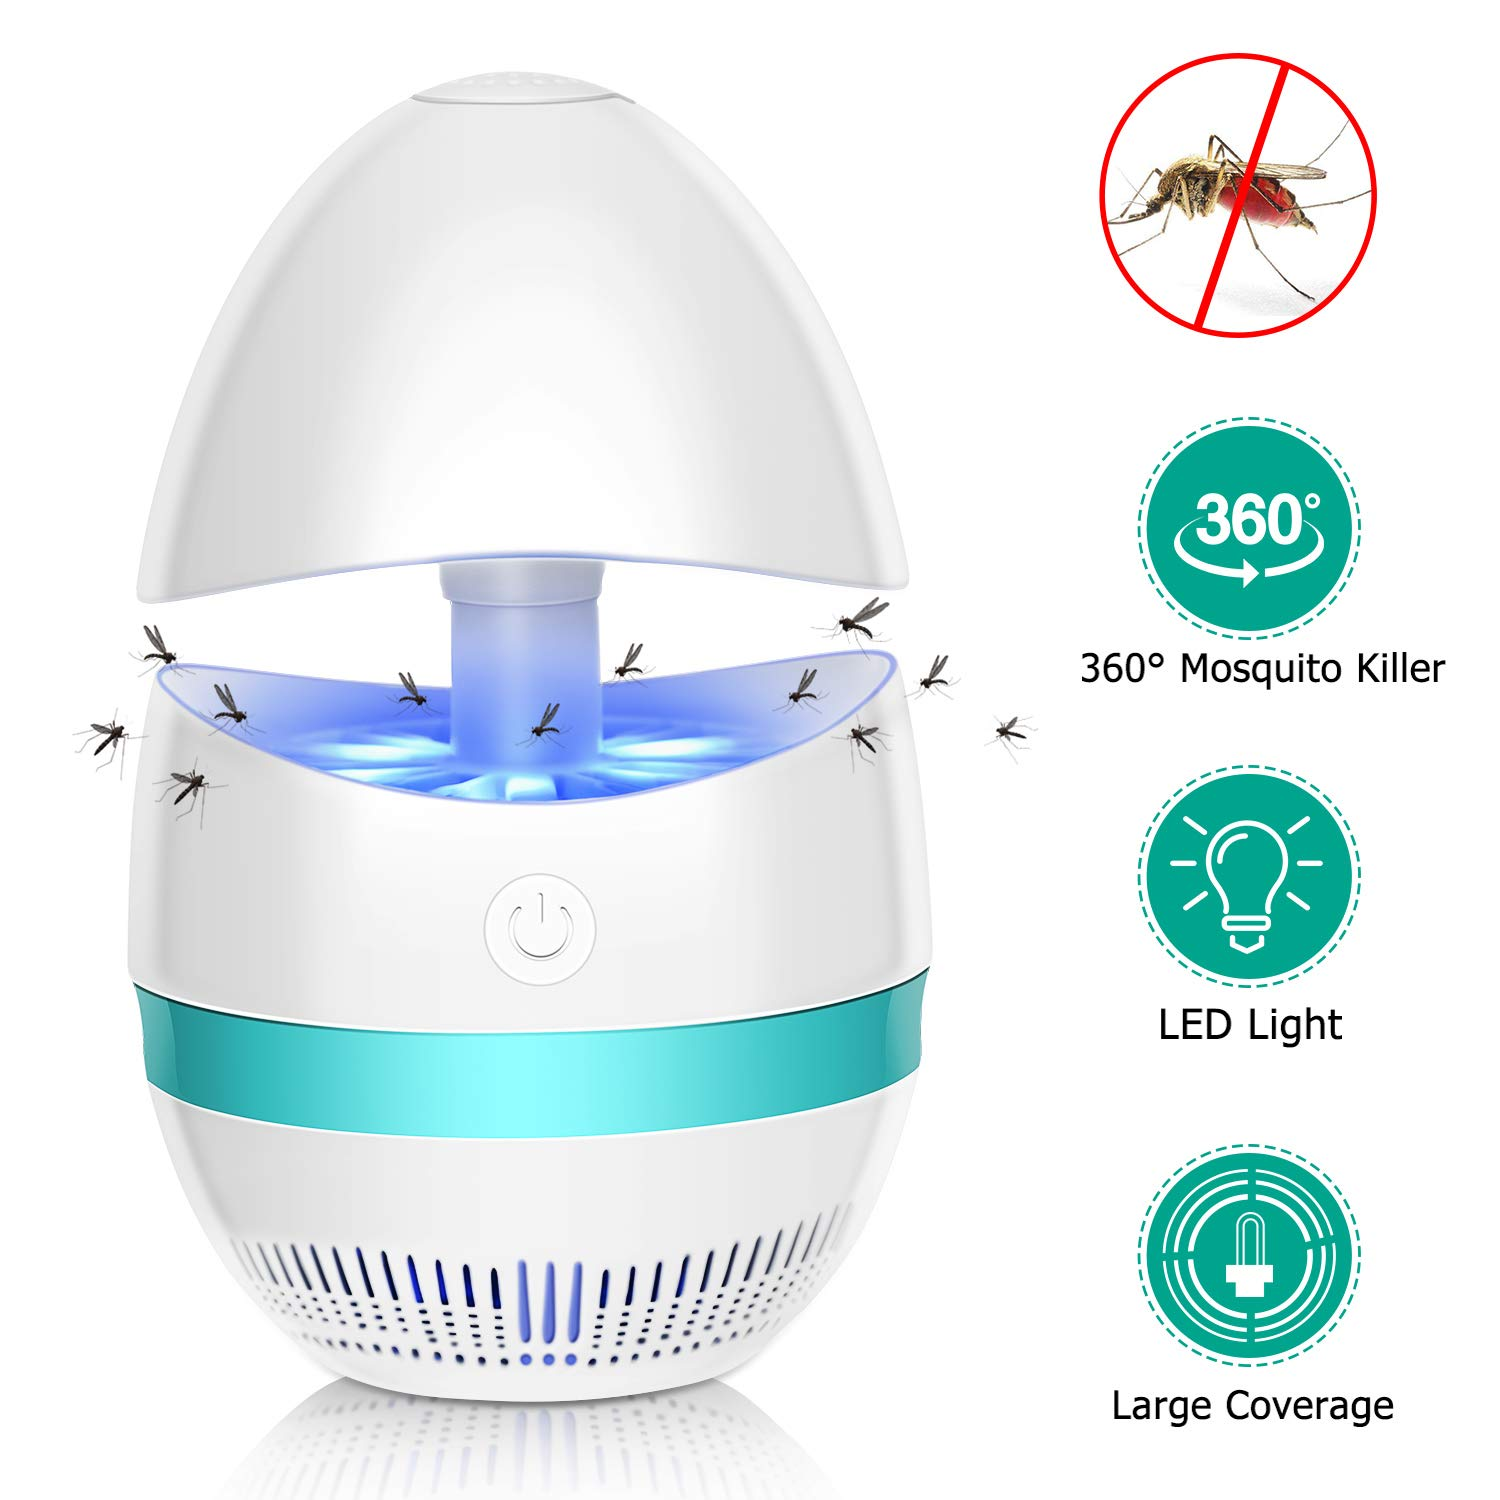 Bug Zapper Indoor Electronic Insect Killer Mosquito Killer Lamp Safe USB Powered Mosquito Zapper with Built in Fan Insect Trap for Indoor Bedroom Kitchen Outdoor Garden Patio Yard Office (EGG Shape)